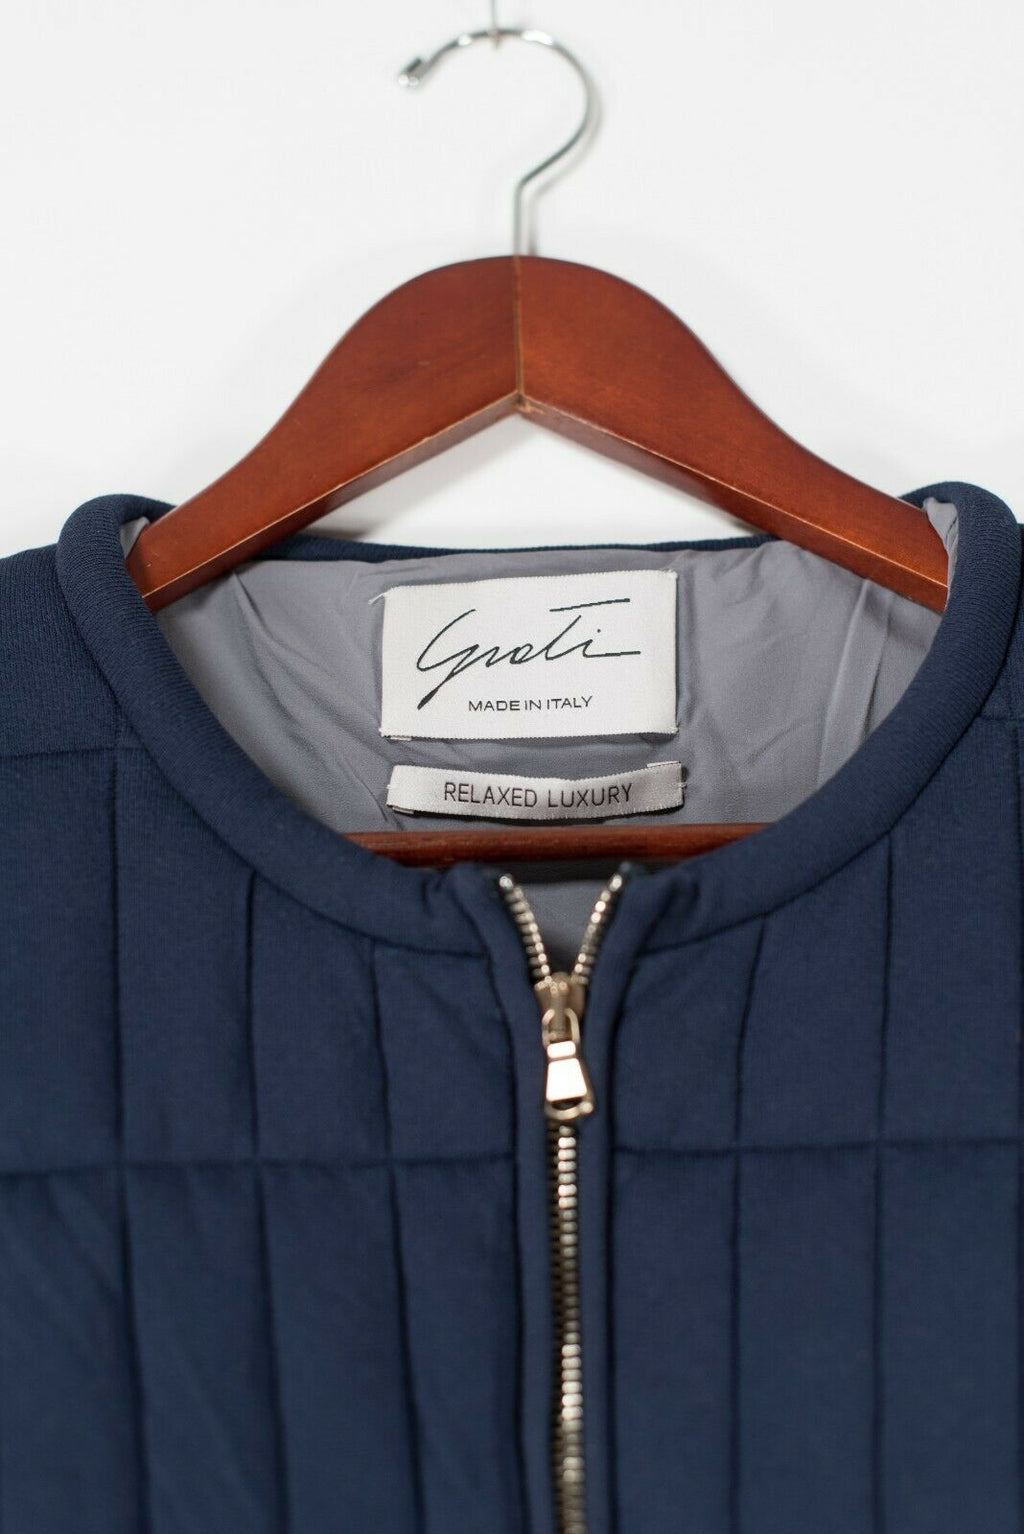 Giorgio Grati Women's Small Blue Jacket Designer Quilted Jersey Knit Full Zip